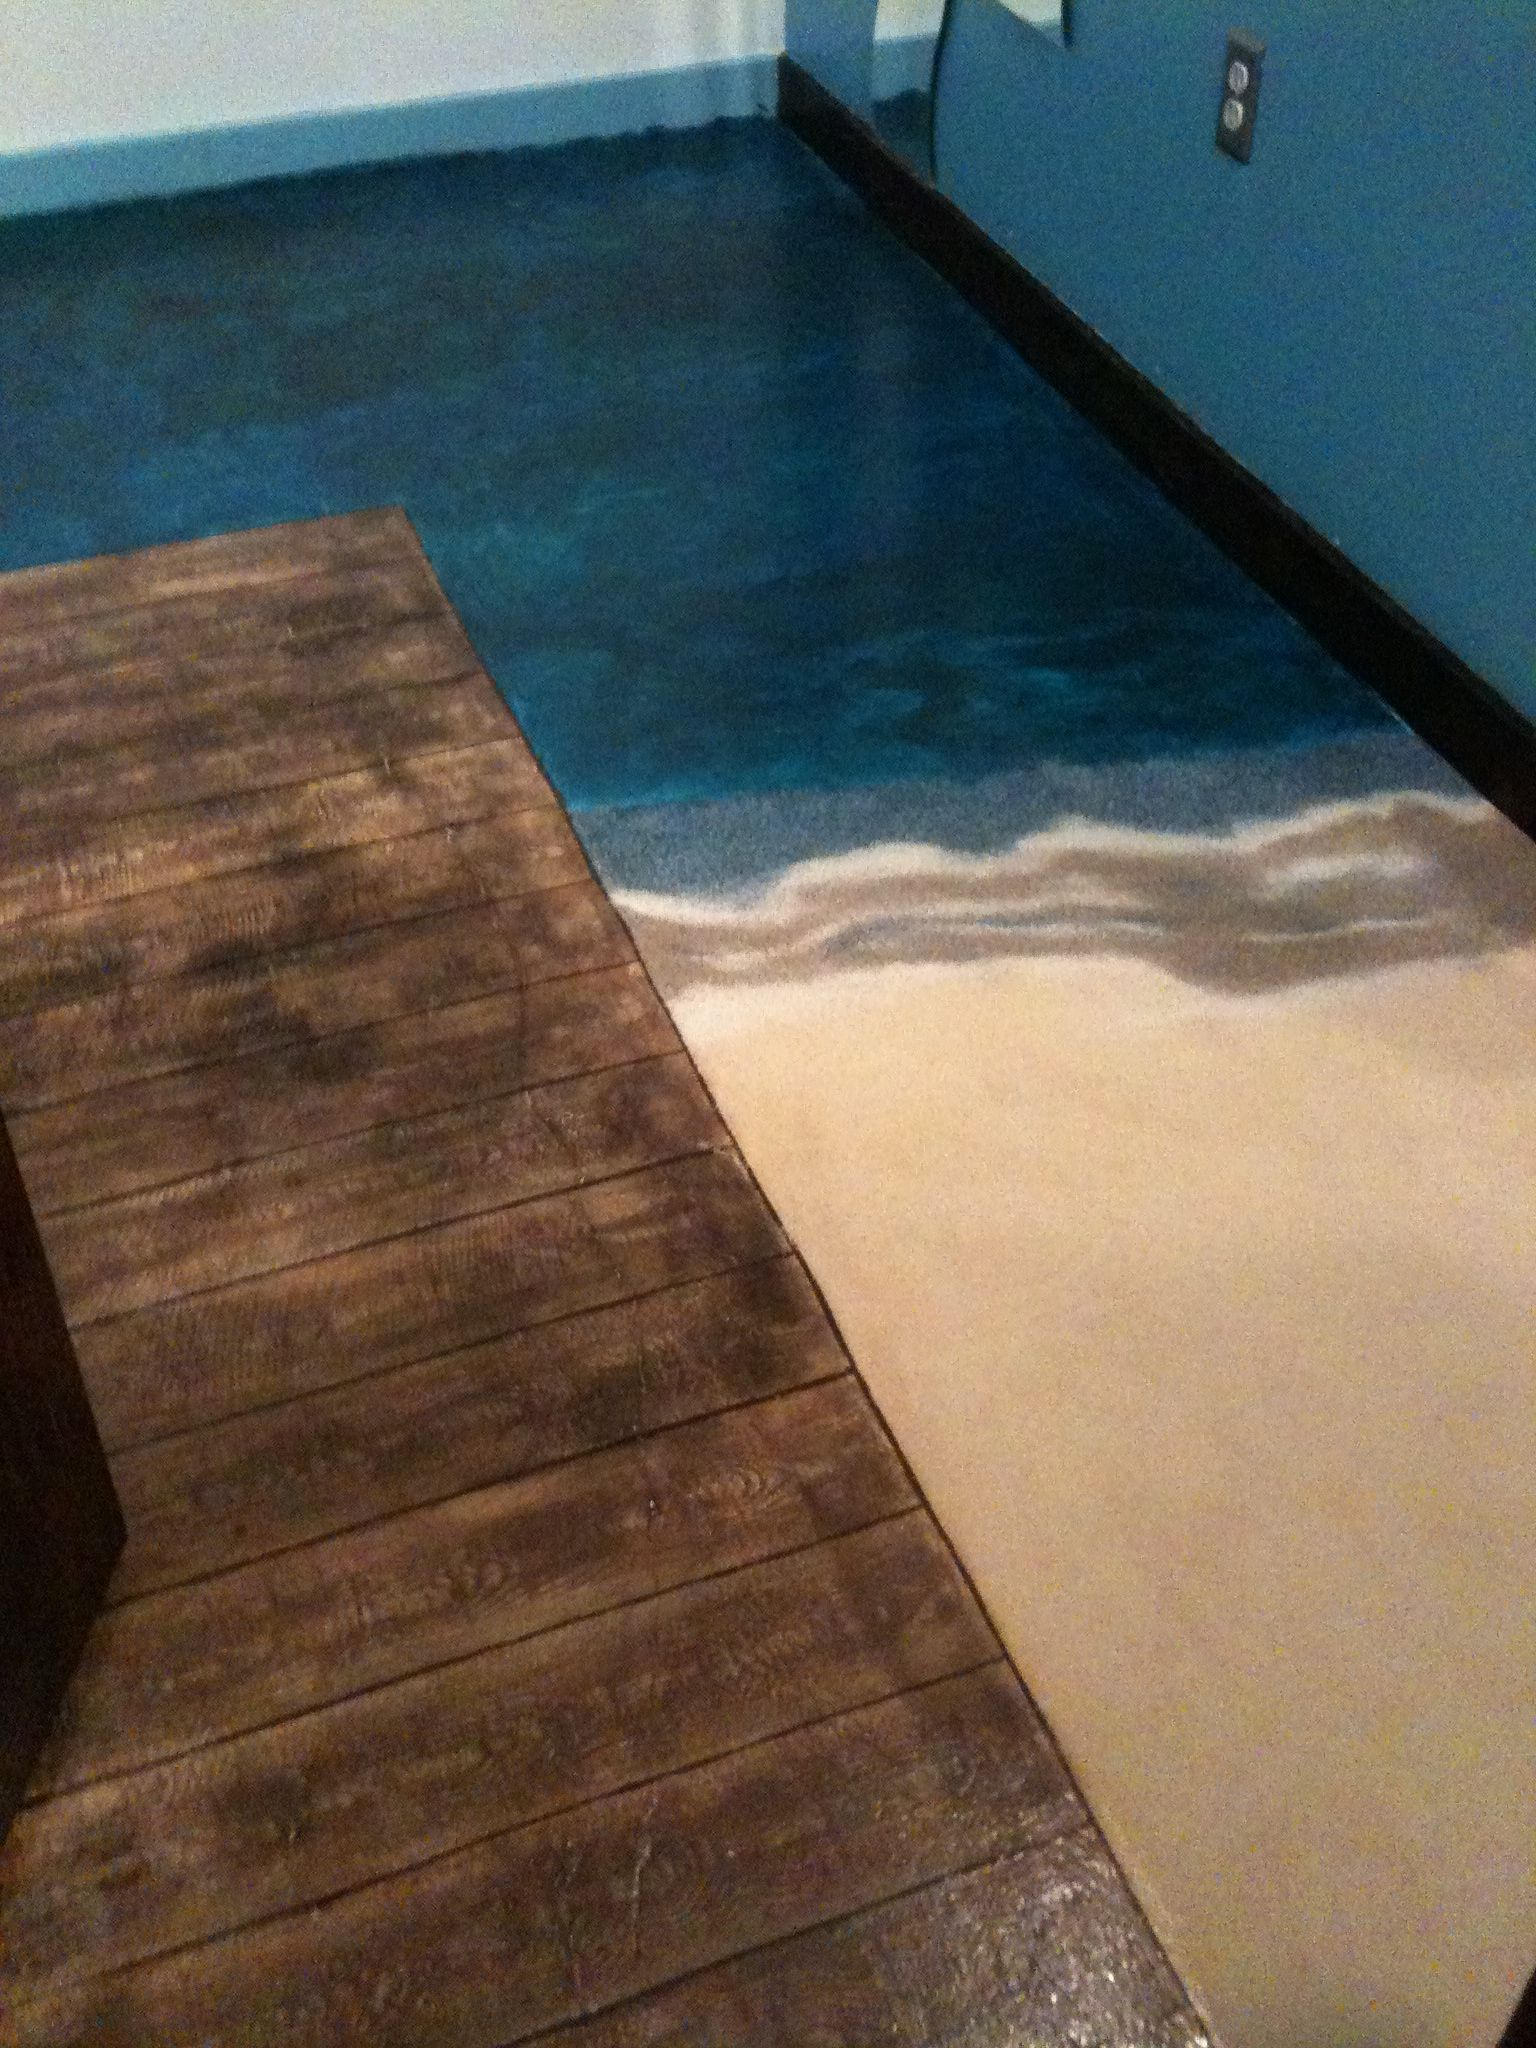 This Is A Concrete Floor That I Painted With Latex Paint And Faux